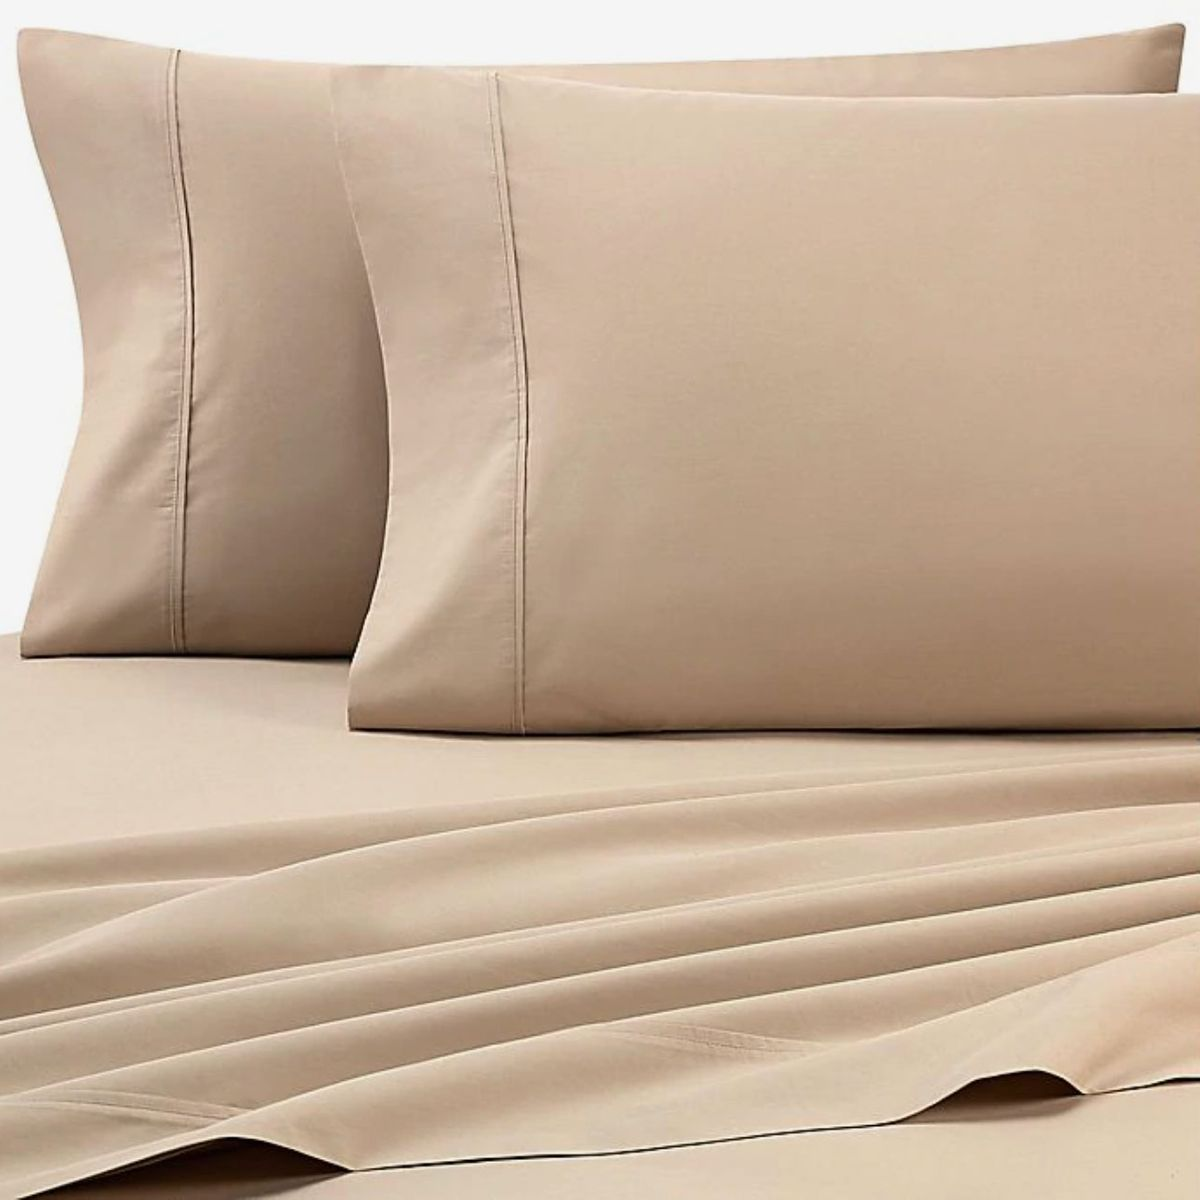 Two brown pillows and matching sheets.